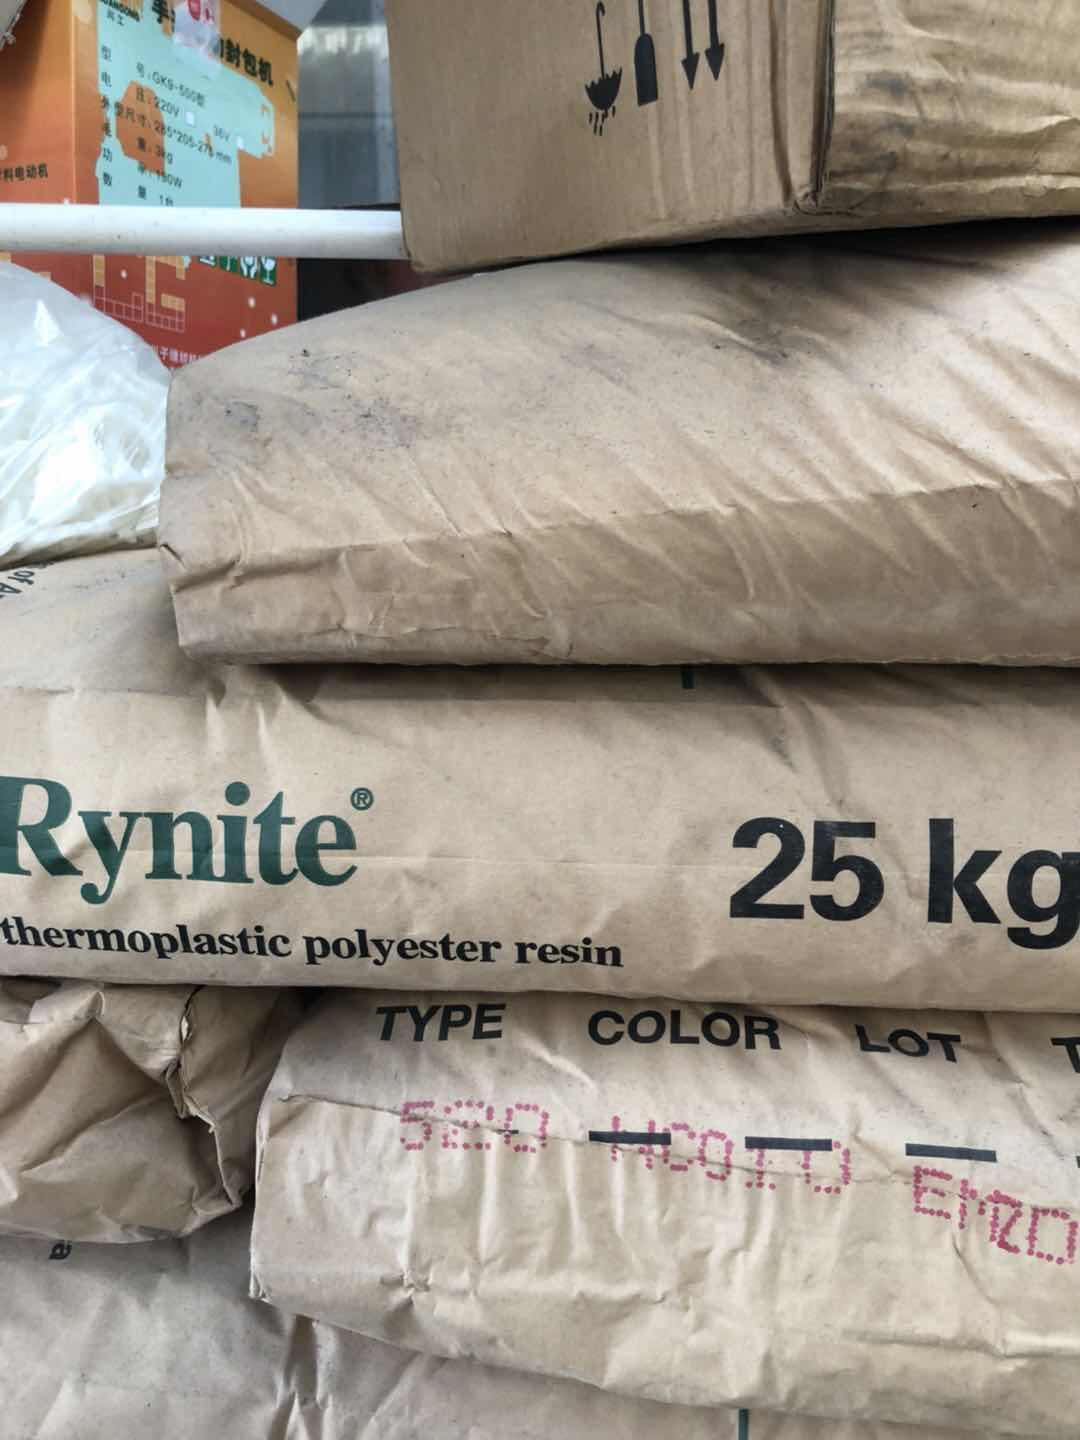 RYNITE 520 NC010 (20% glass fibre reinforced polyester resin)